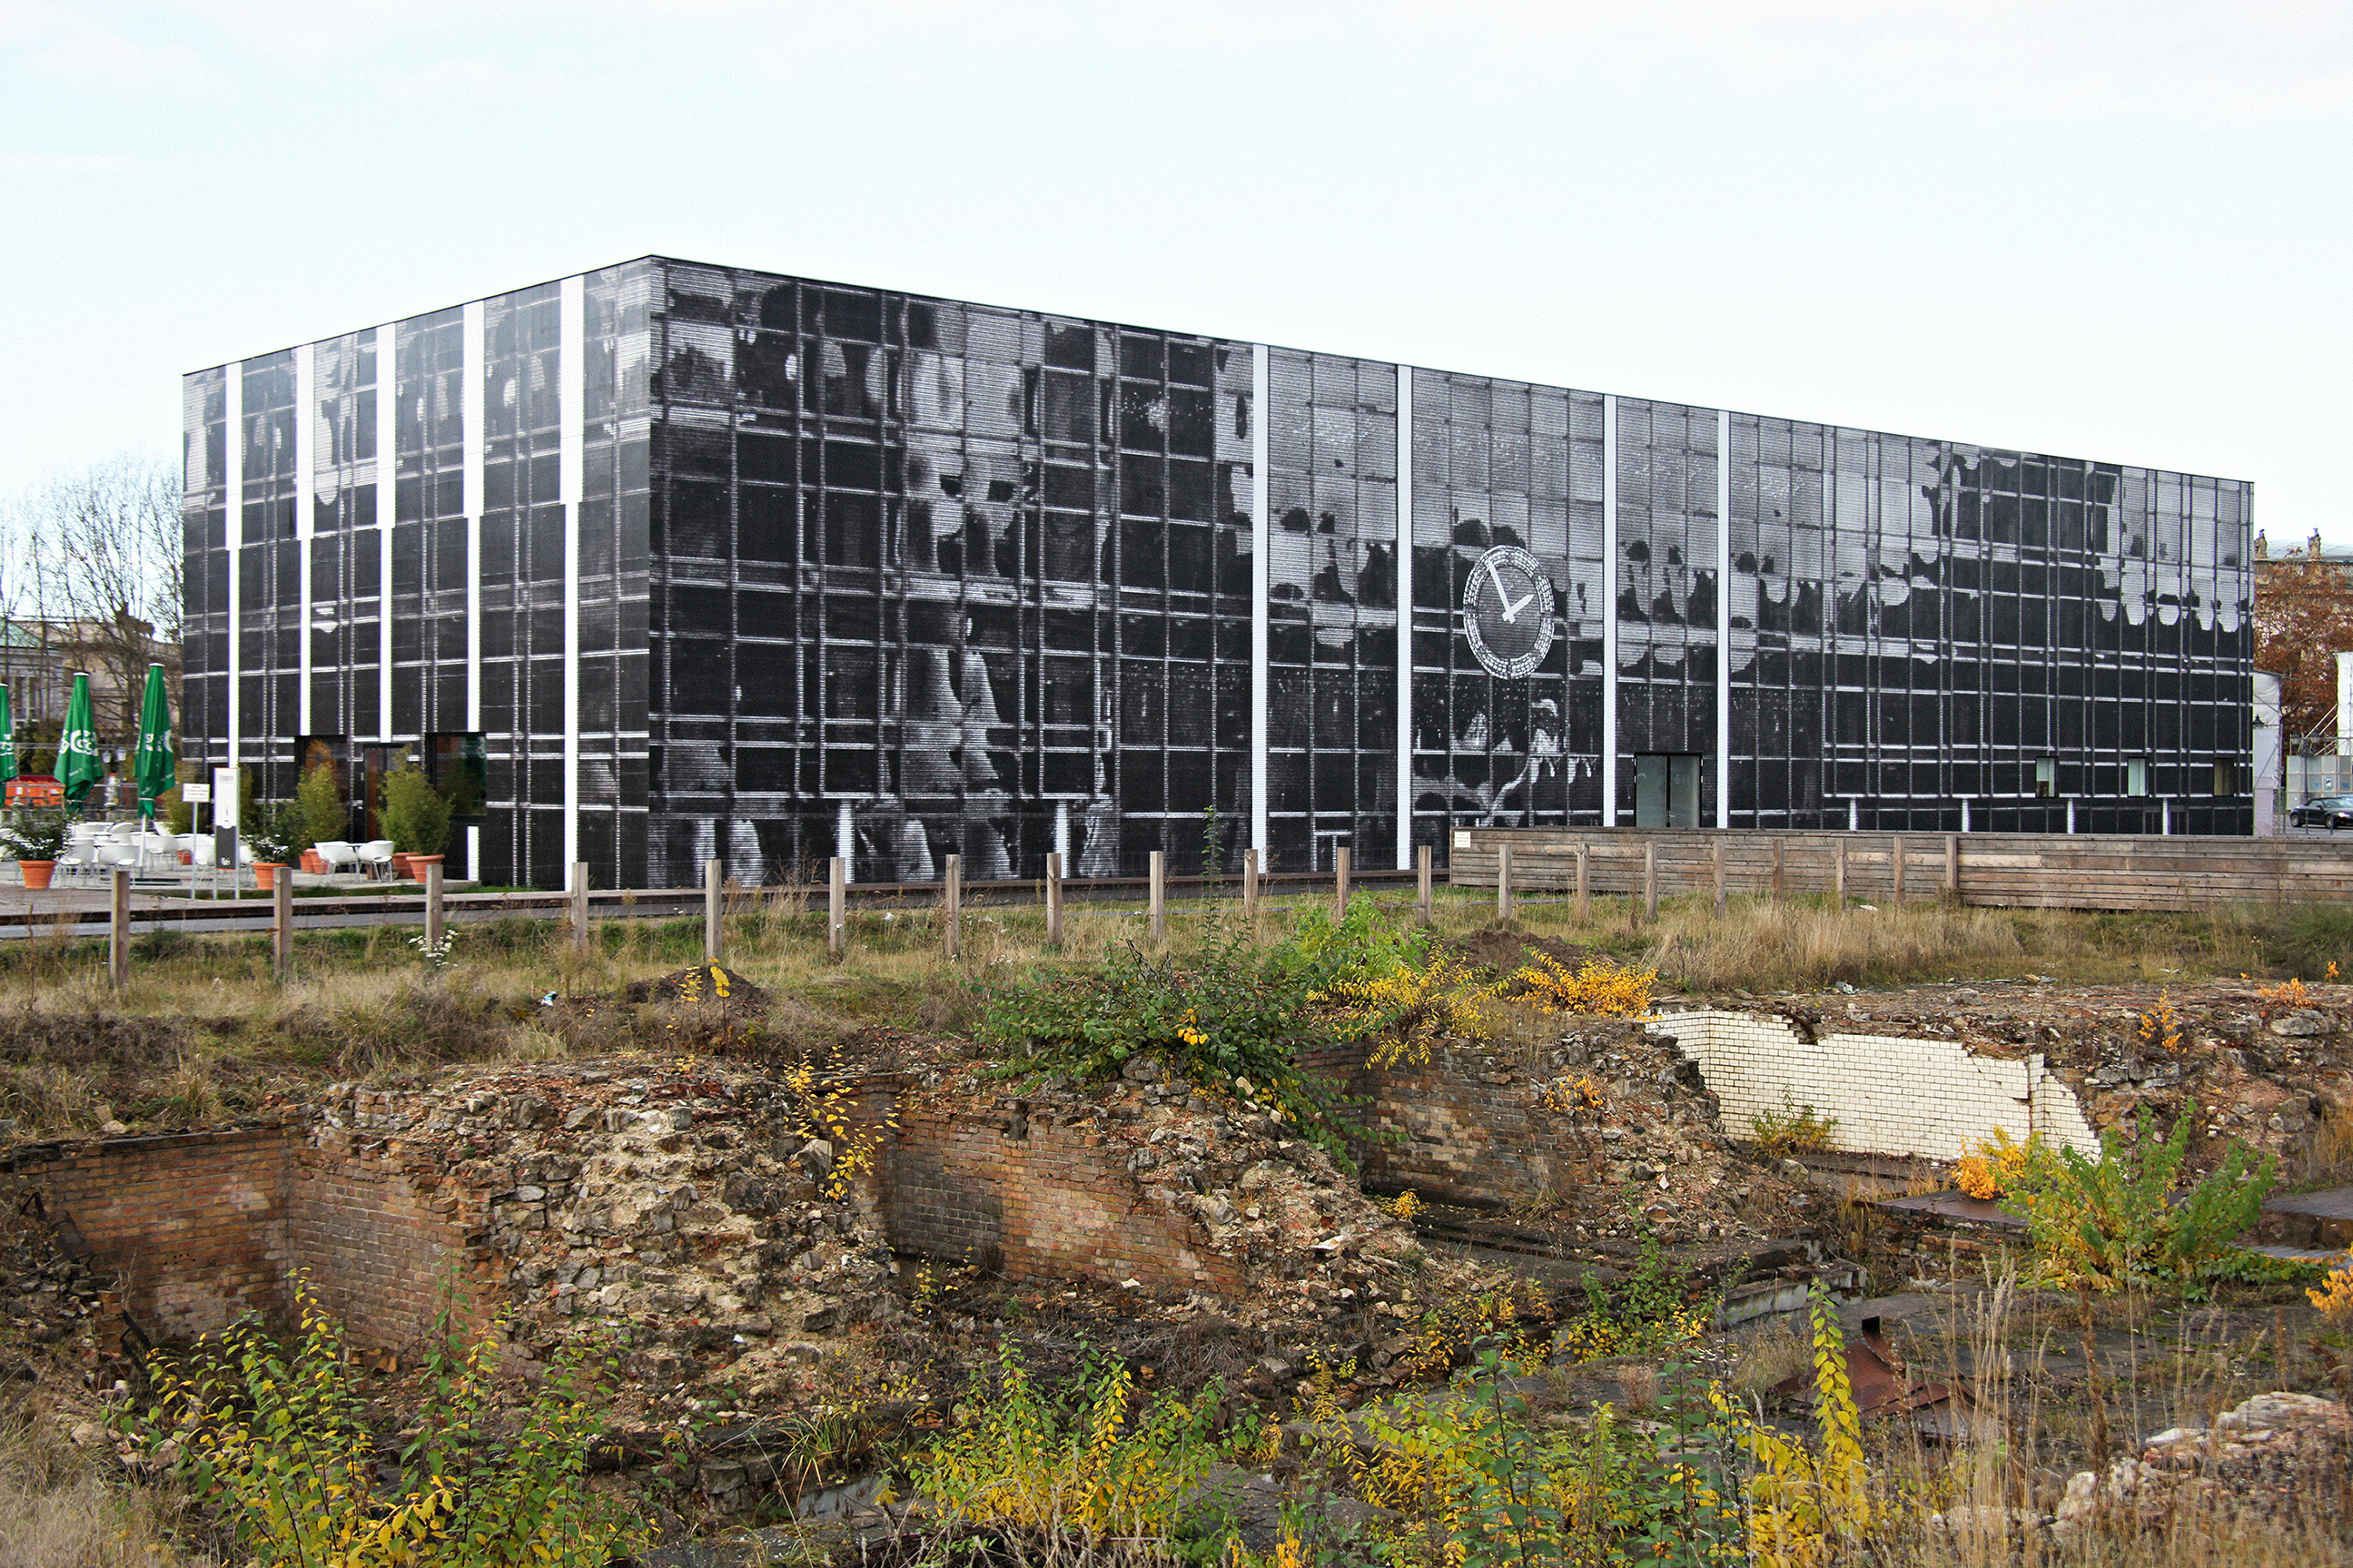 Bettina Pousttchi, Echo Berlin, 2009/2010, 970 paper posters on the facade of Temporary Kunsthalle Berlin, 20 m × 11 m × 57 m. Courtesy: the artist and Buchmann Galerie, Berlin/Lugano; photograph: Bettina Pousttchi